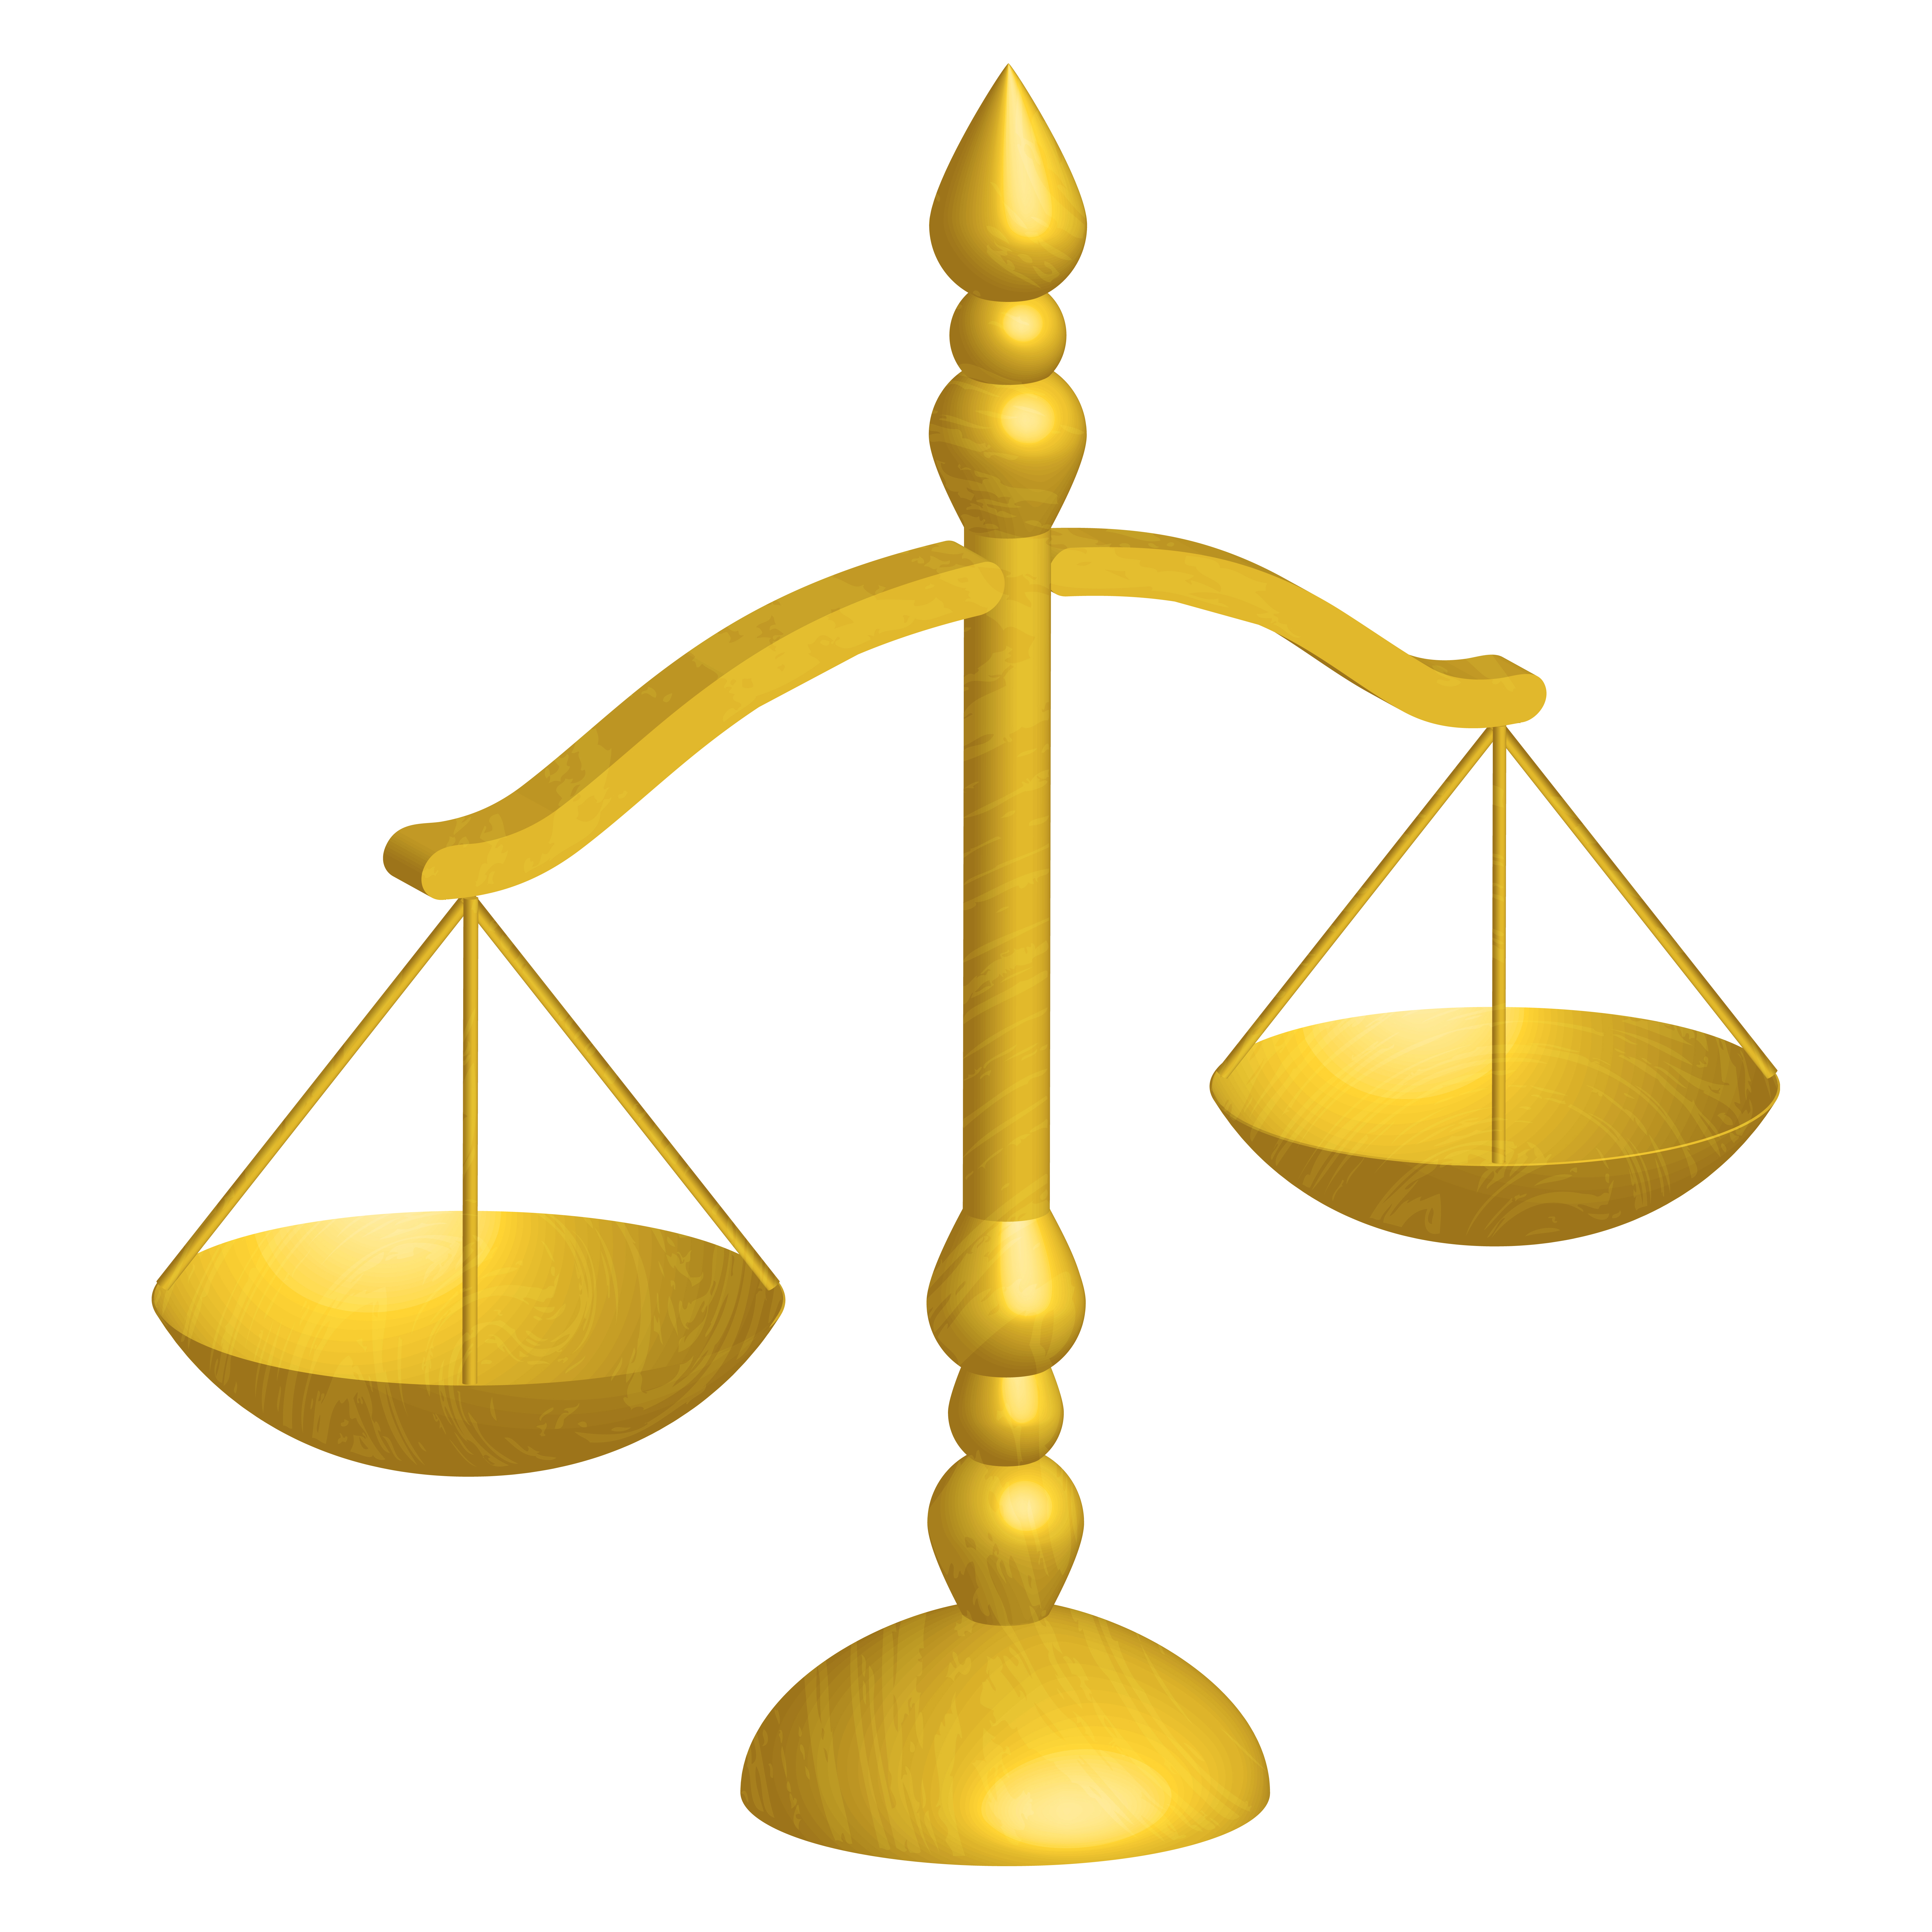 6866x6866 Scales Of Justice Clip Art Free Collection Download And Share